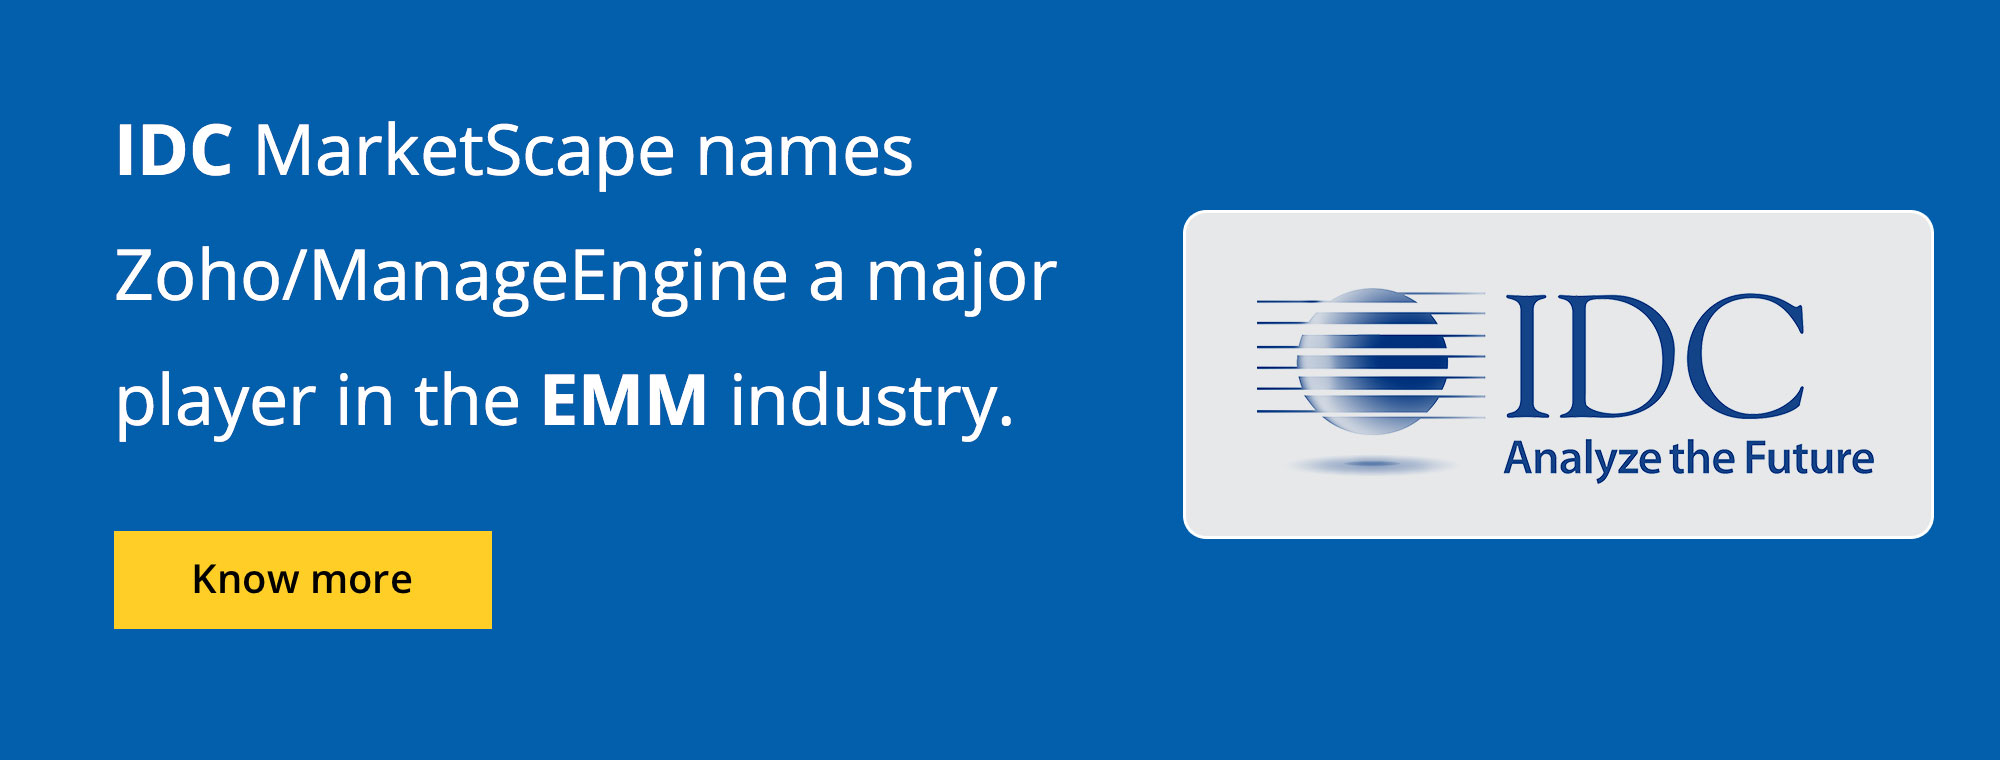 IDC identifies ManageEngine as a Major Player in the EMM industry